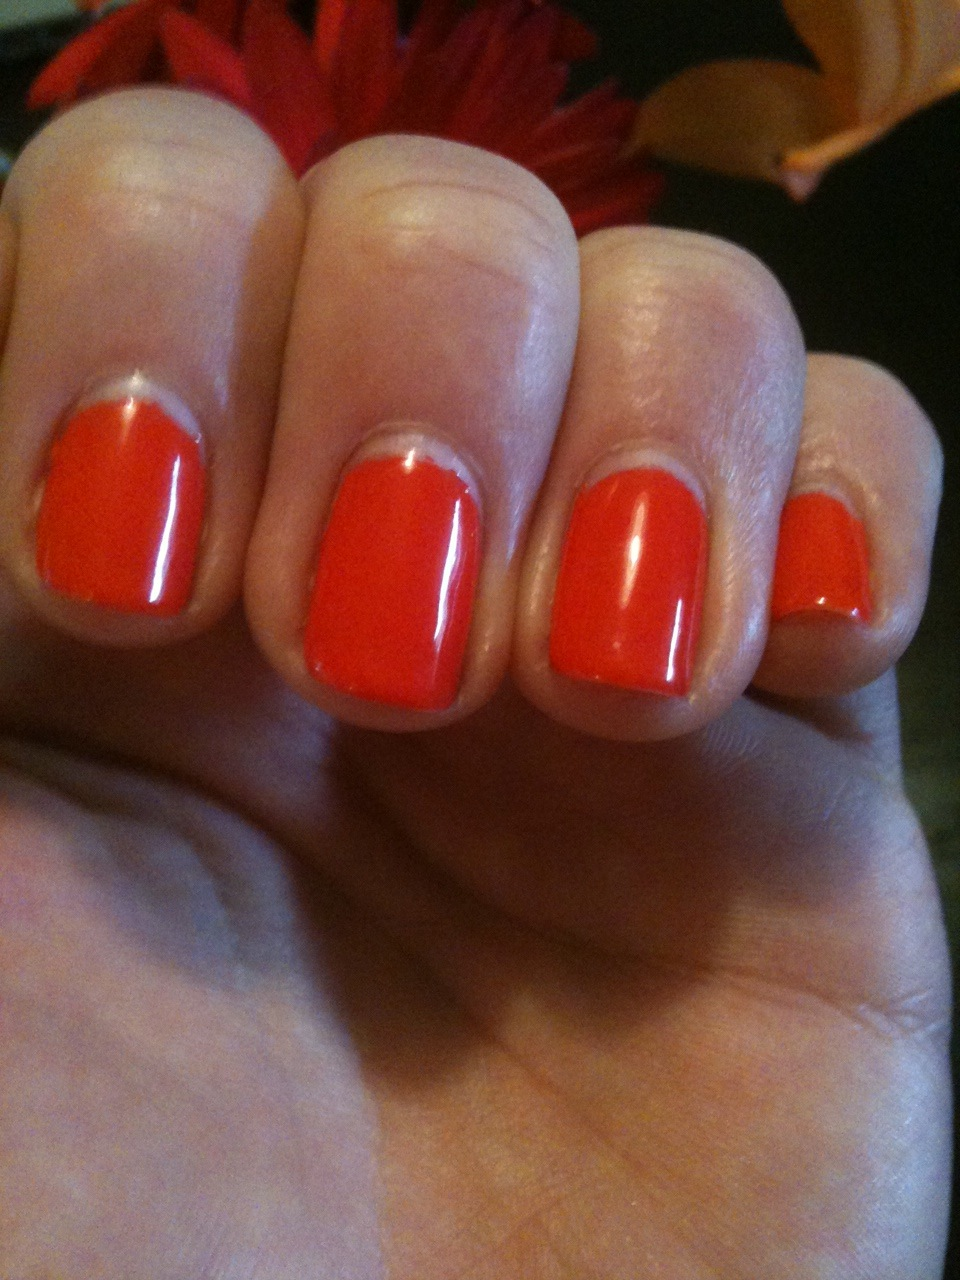 Are You Jellish? The Life Cycle of Gel Nail Polish